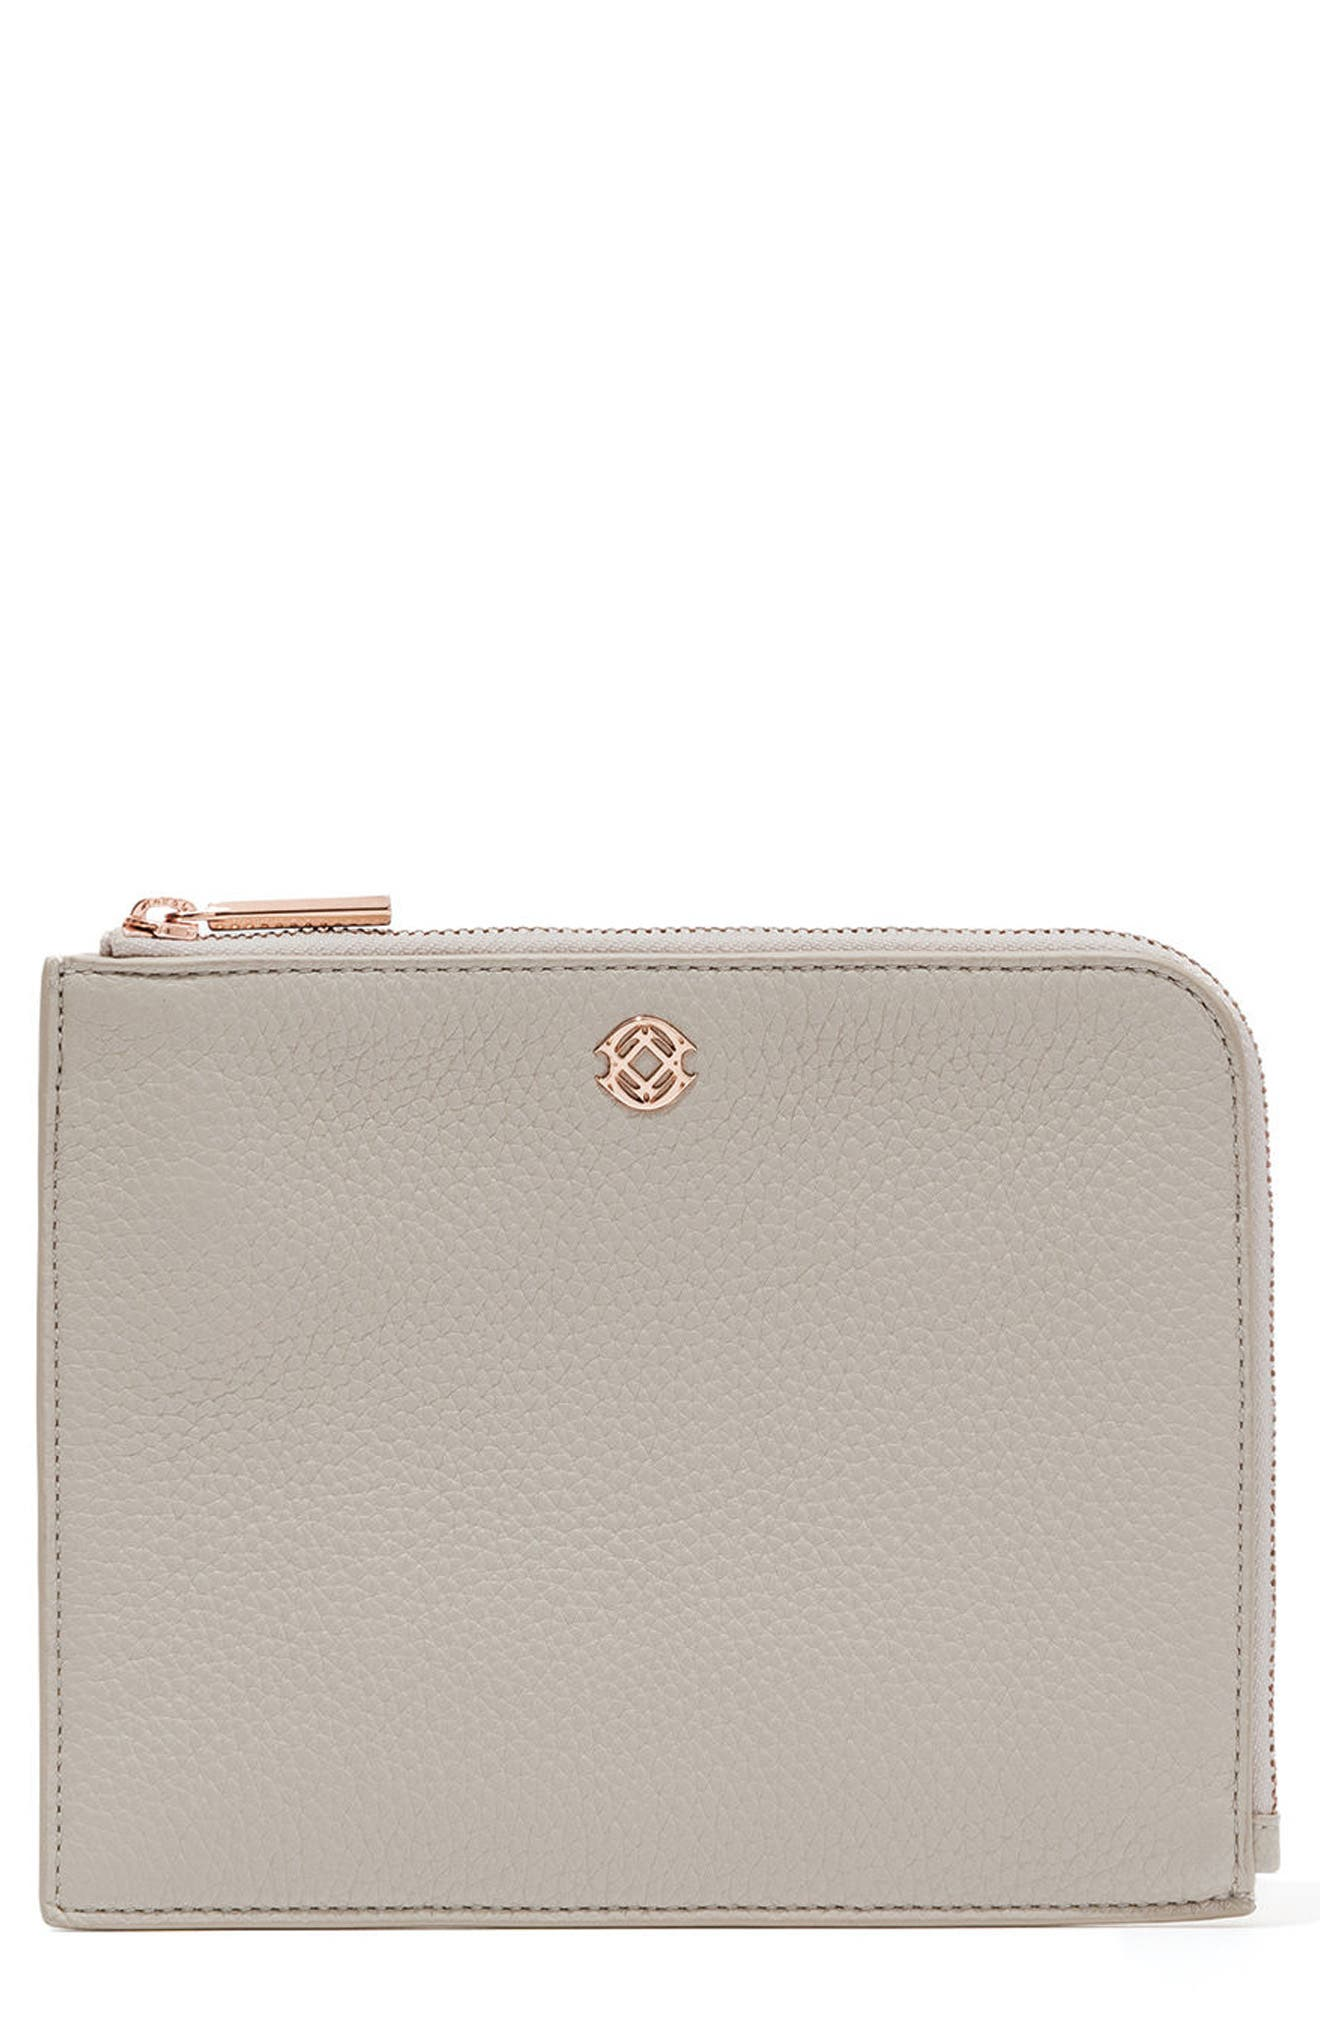 Small Elle Leather Clutch,                             Main thumbnail 1, color,                             Bone